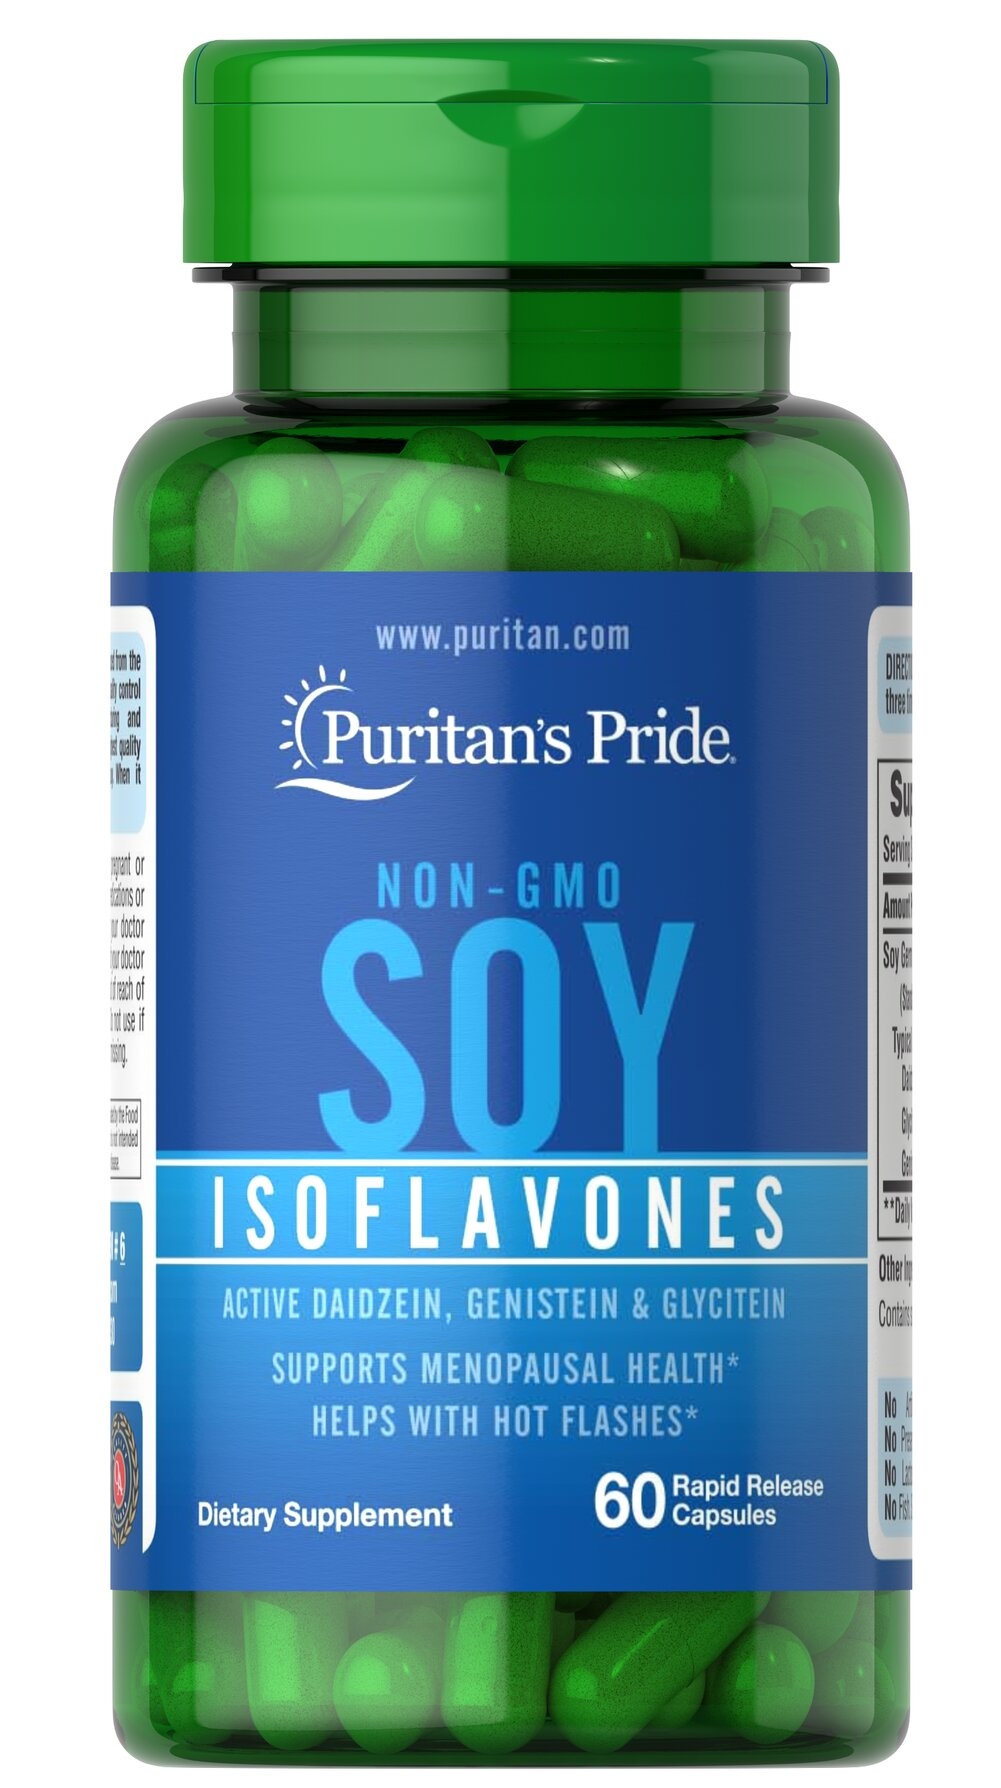 Non-GMO Soy Isoflavones 750 mg <p>Soy is a rich, plant-based source of phytoestrogens, which are naturally occurring compounds that help with hot flashes in menopausal women.**</p><p>Made from non-GMO certified soybeans, soy isoflavones provide holistic supplementation for a woman's midlife years. Our non-GMO soy isoflavones  include Daidzein, Genistein, and other soy isoflavones.</p> 60 Capsules 750 mg $10.99